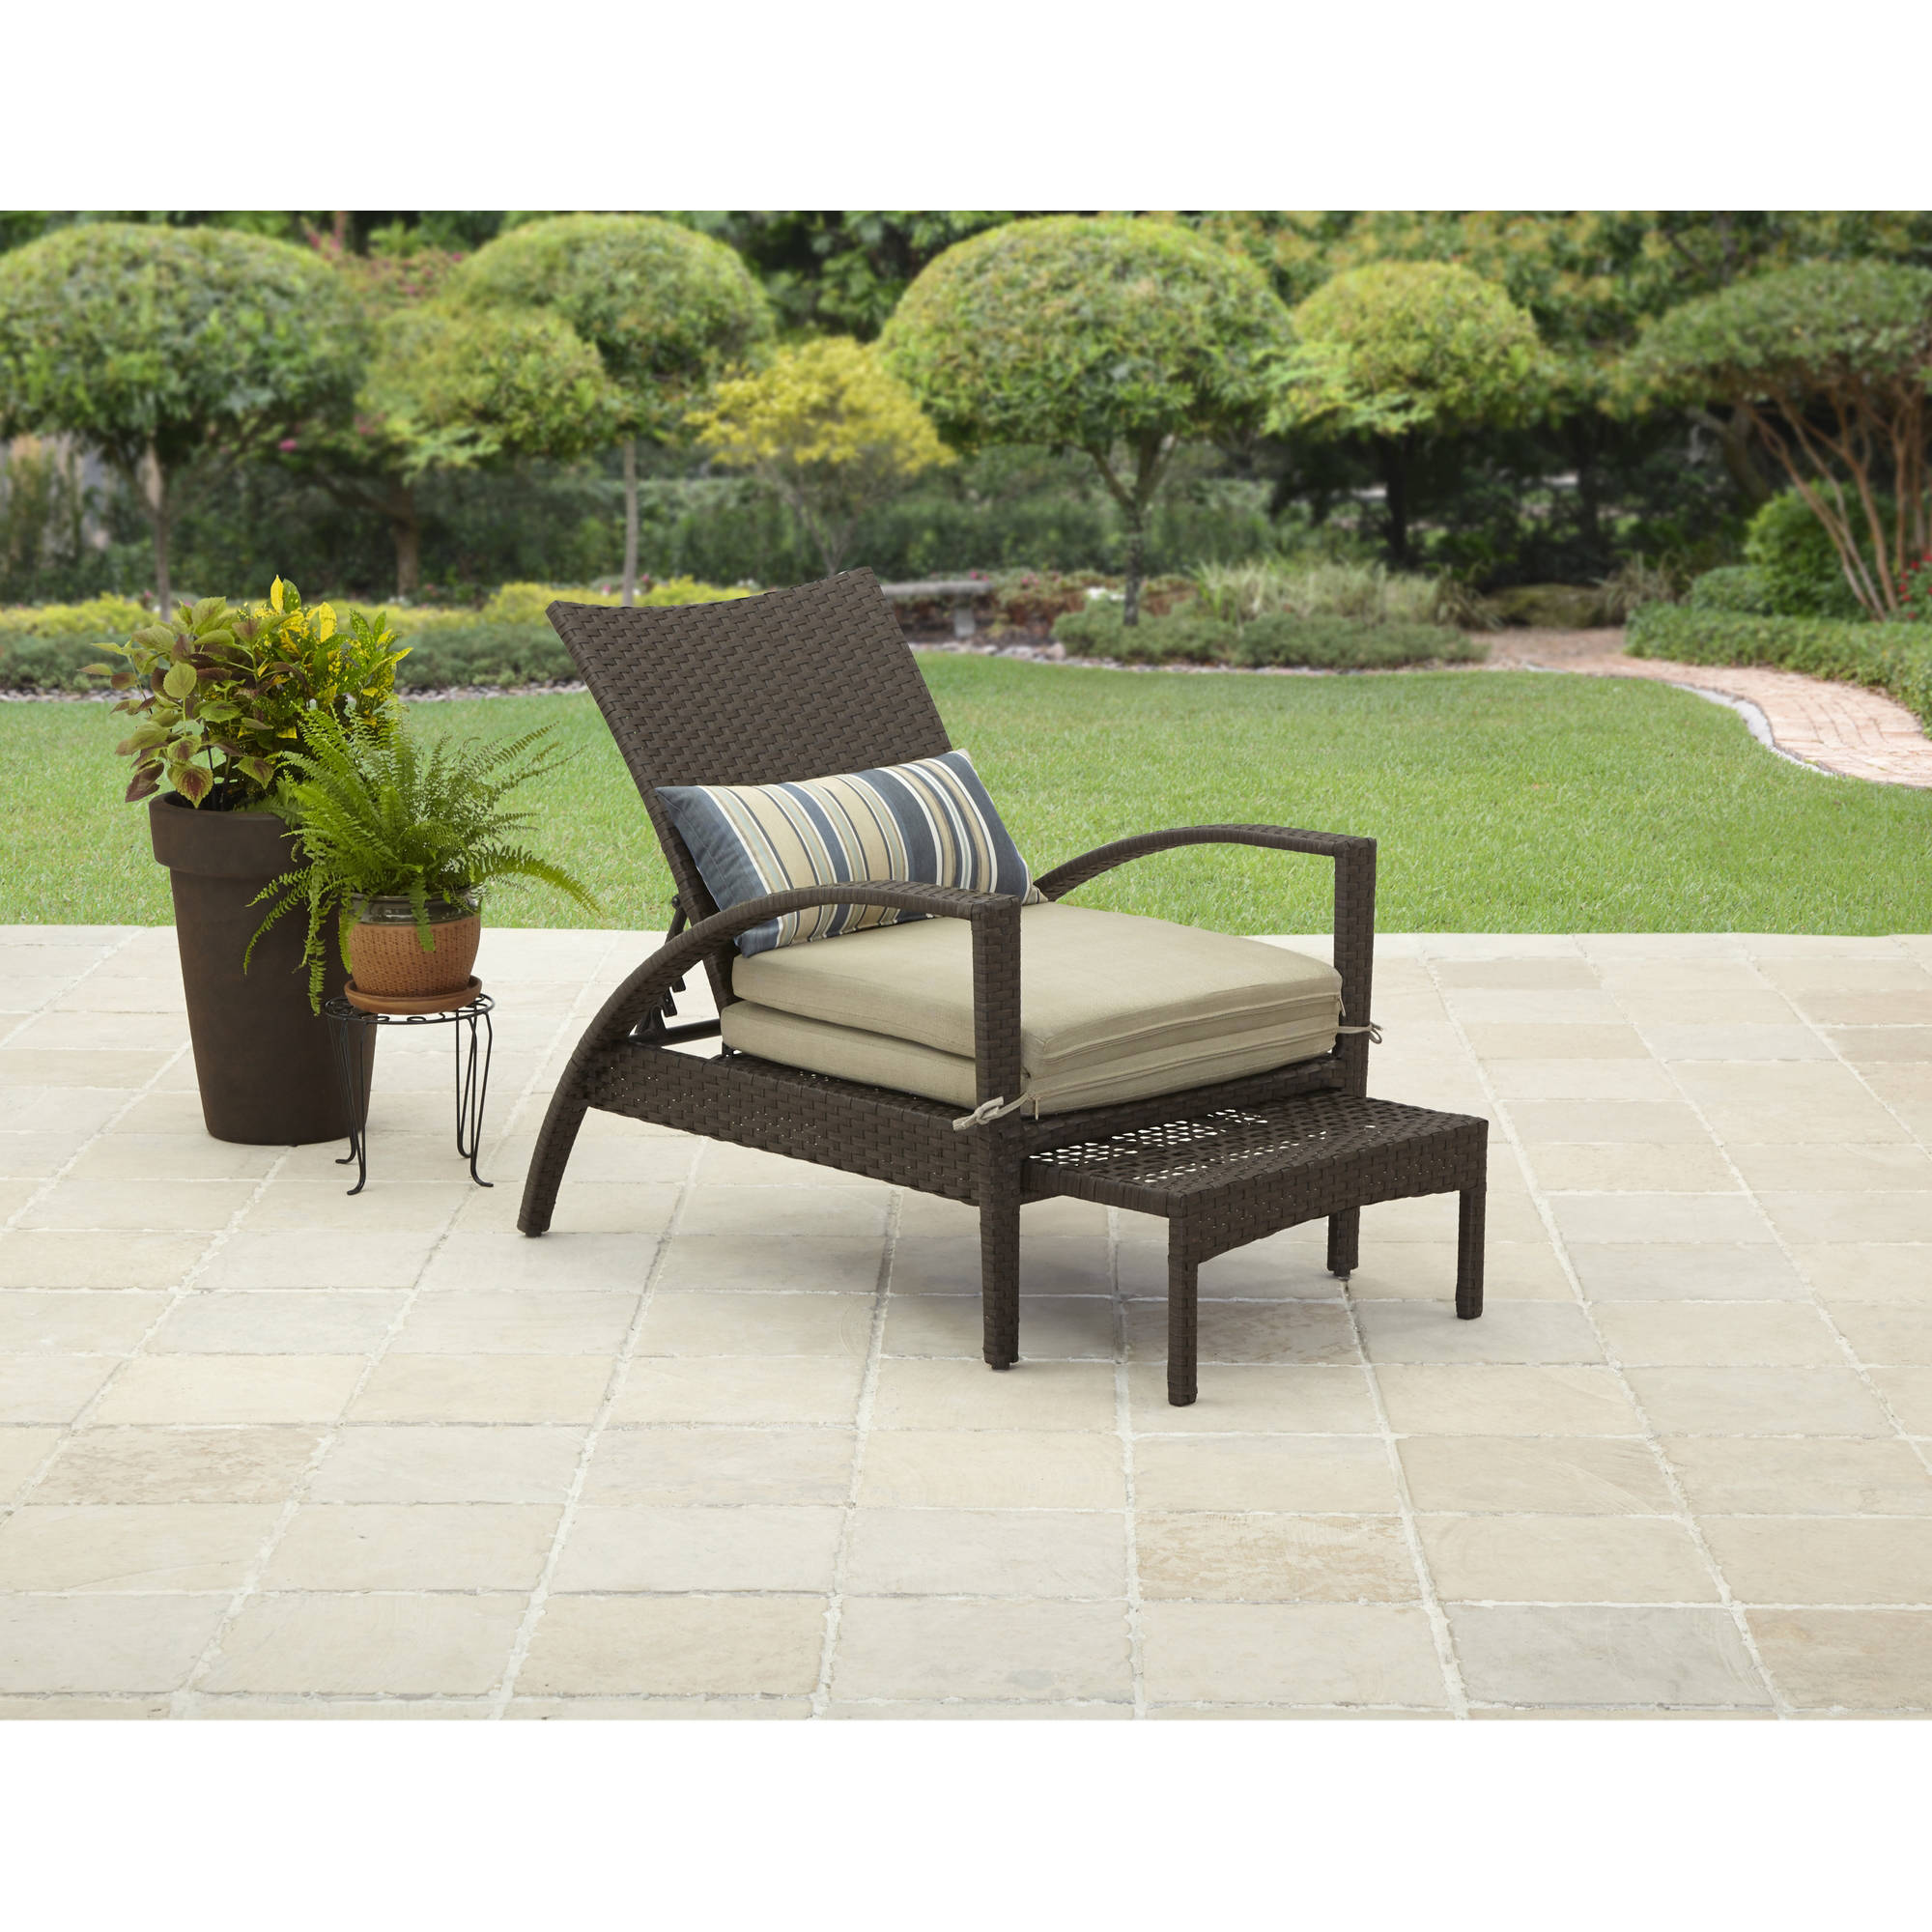 Luxury Best Place to Buy Patio Furniture